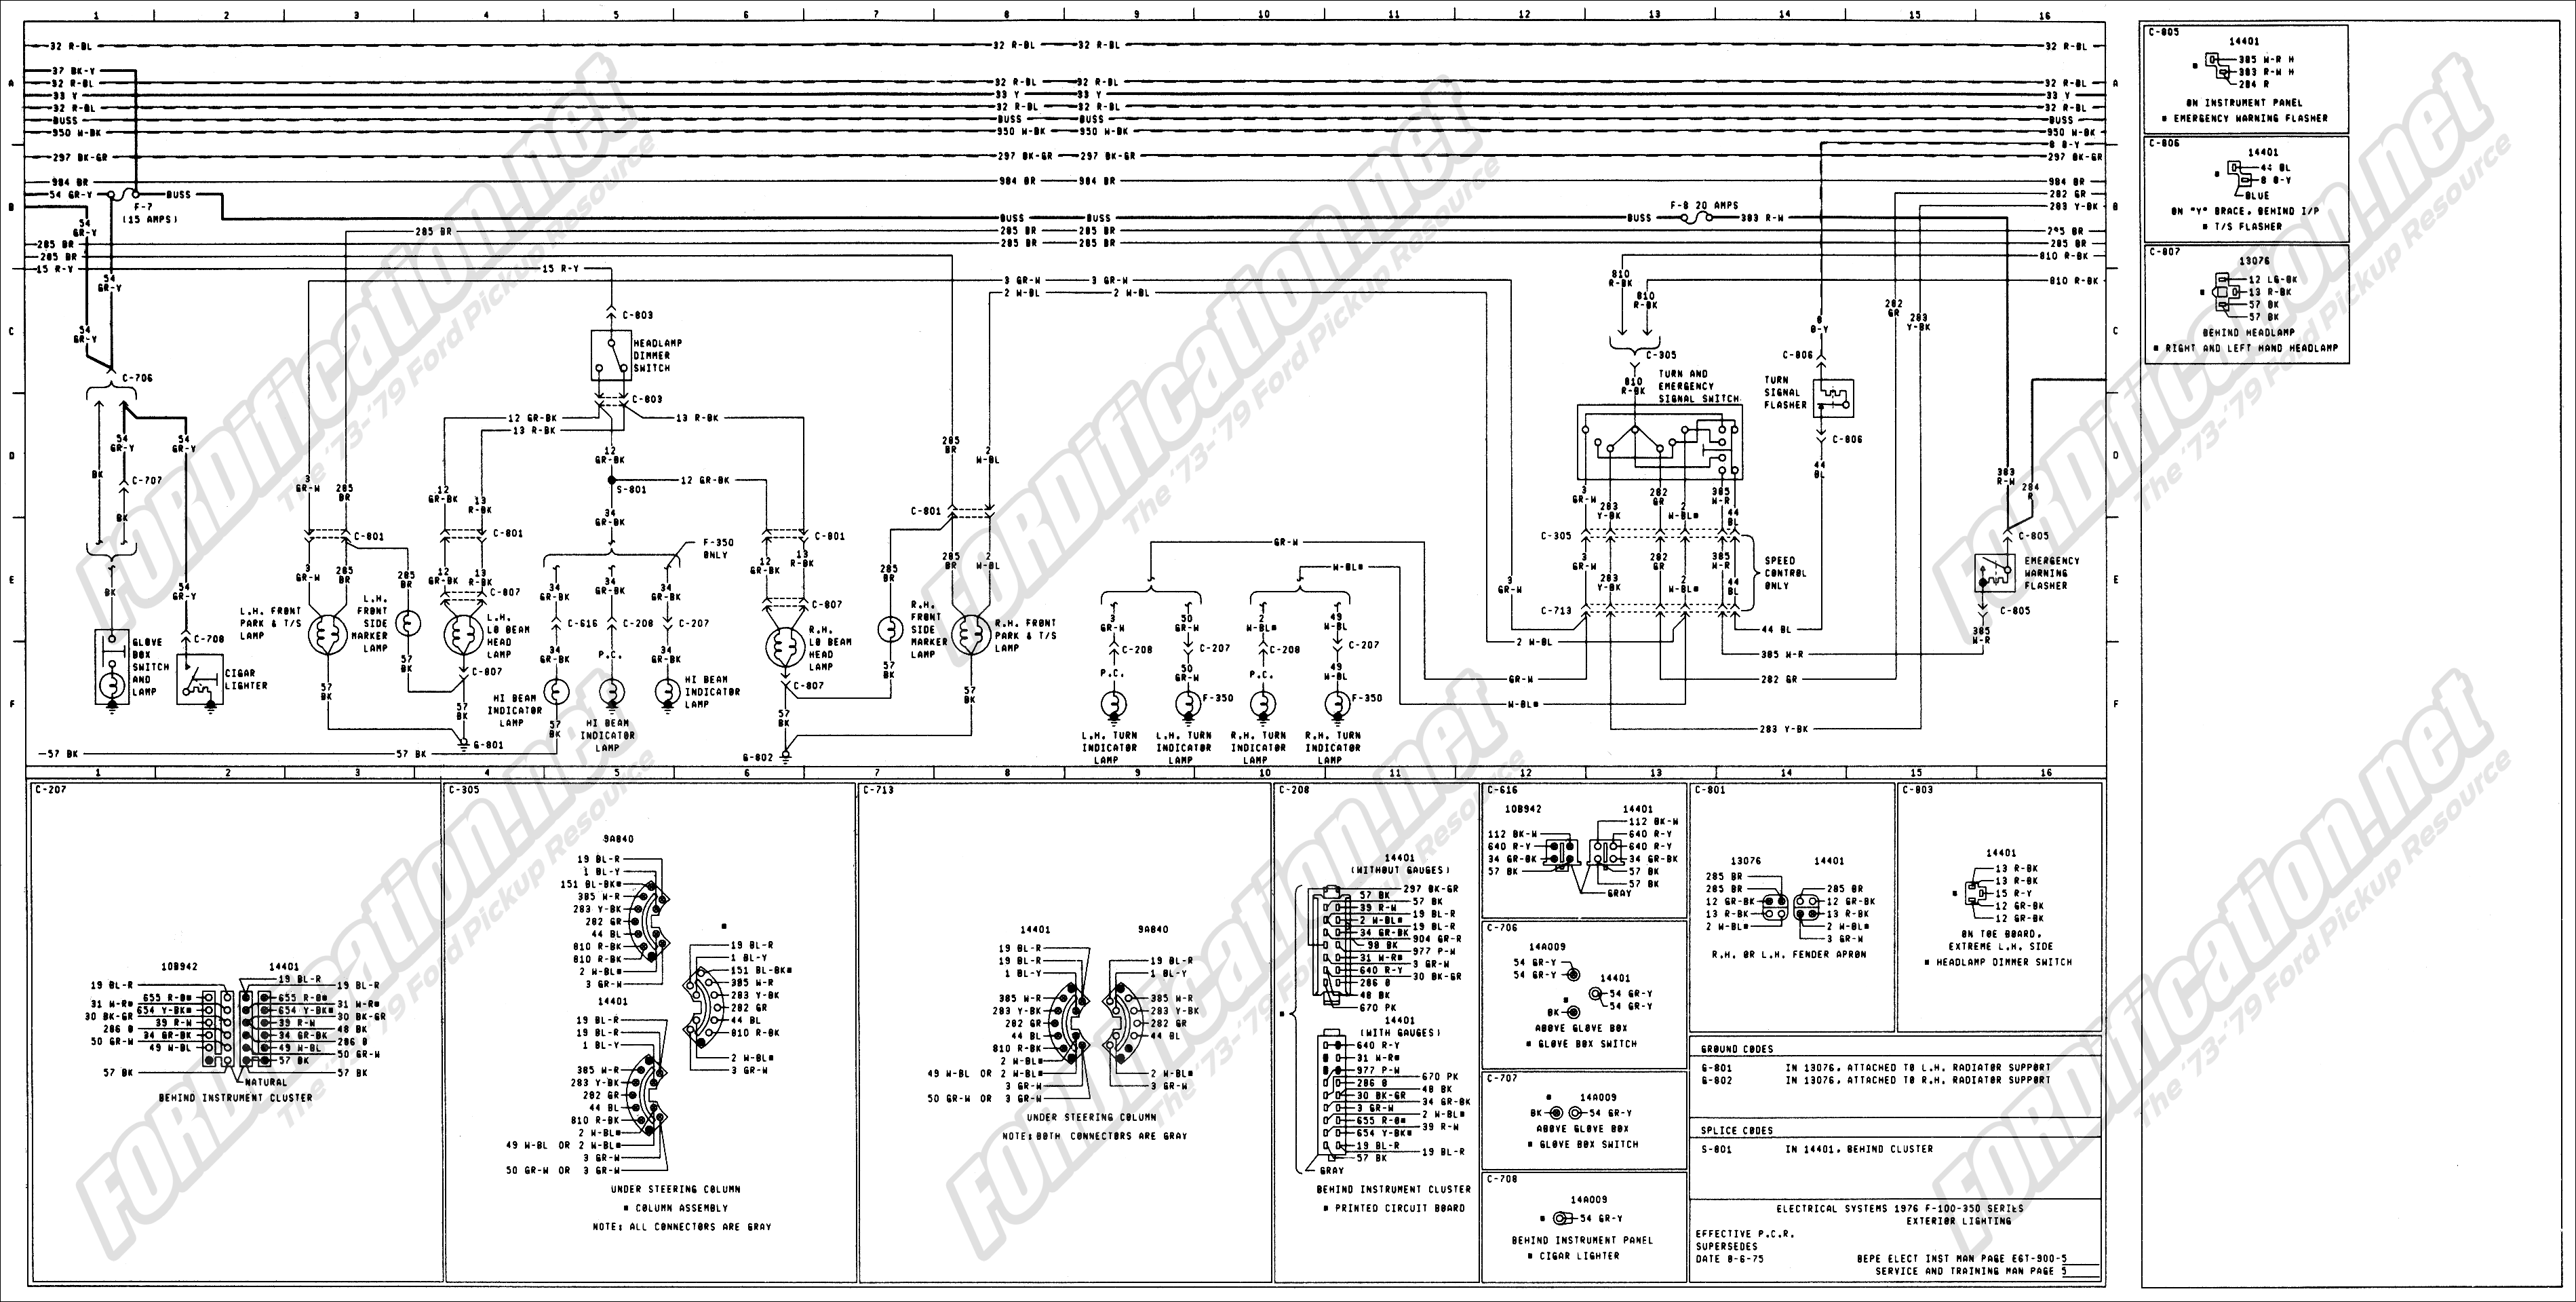 1973 1979 Ford Truck Wiring Diagrams Schematics Traffic Light Diagram In Addition Flasher Relay Circuit